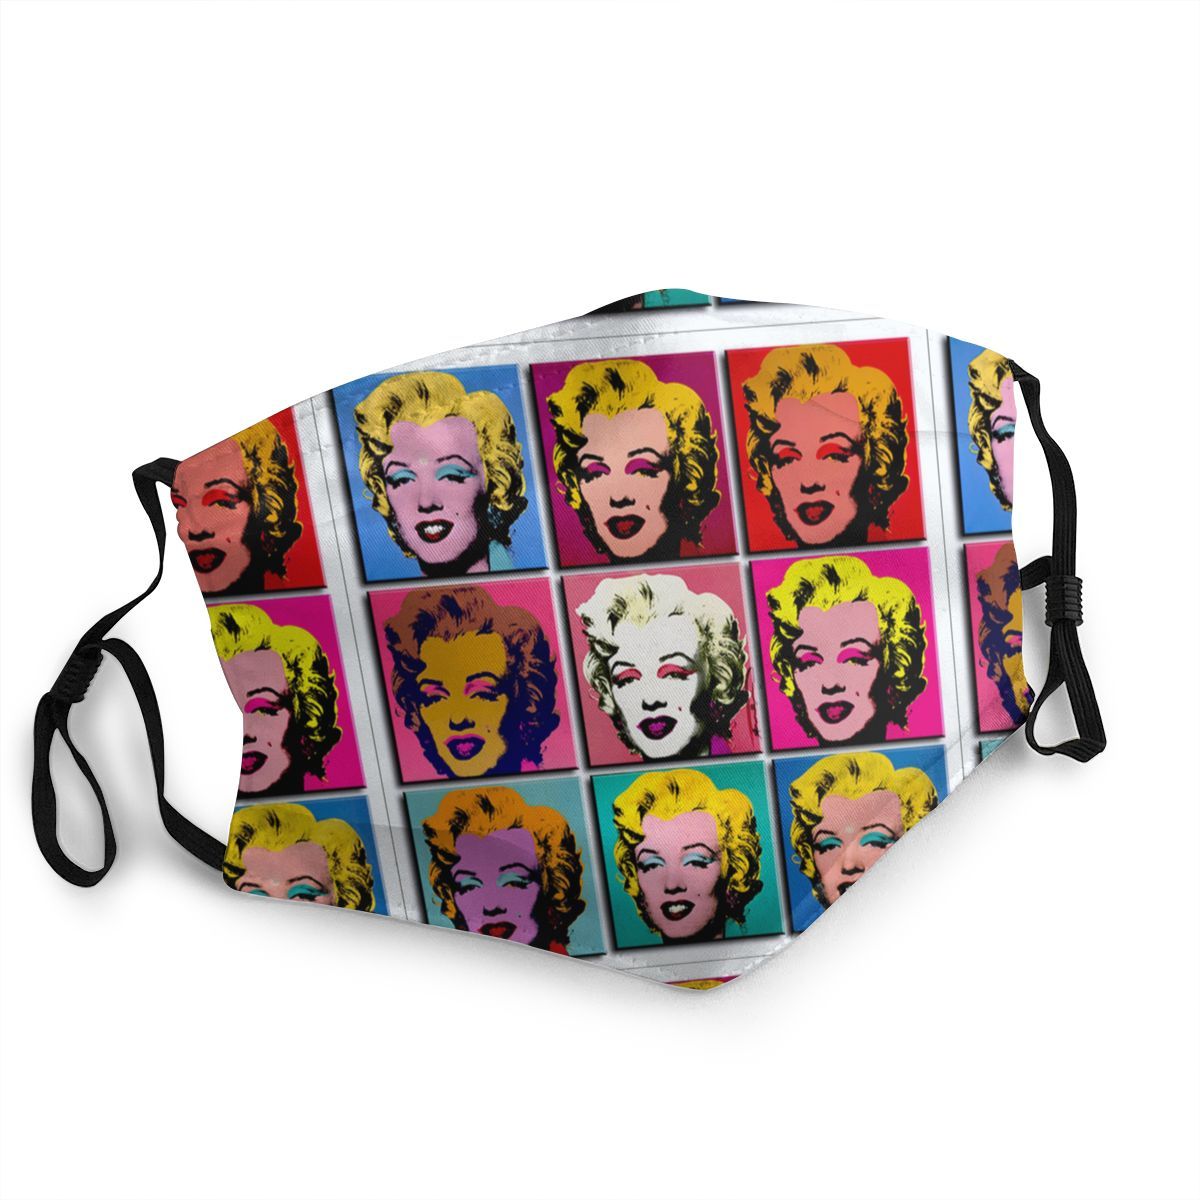 Marilyn Monroe Abstract Art Non-Disposable Face Mask Pop Art Anti Bacterial Dust Mask Protection Cover Respirator Mouth Muffle